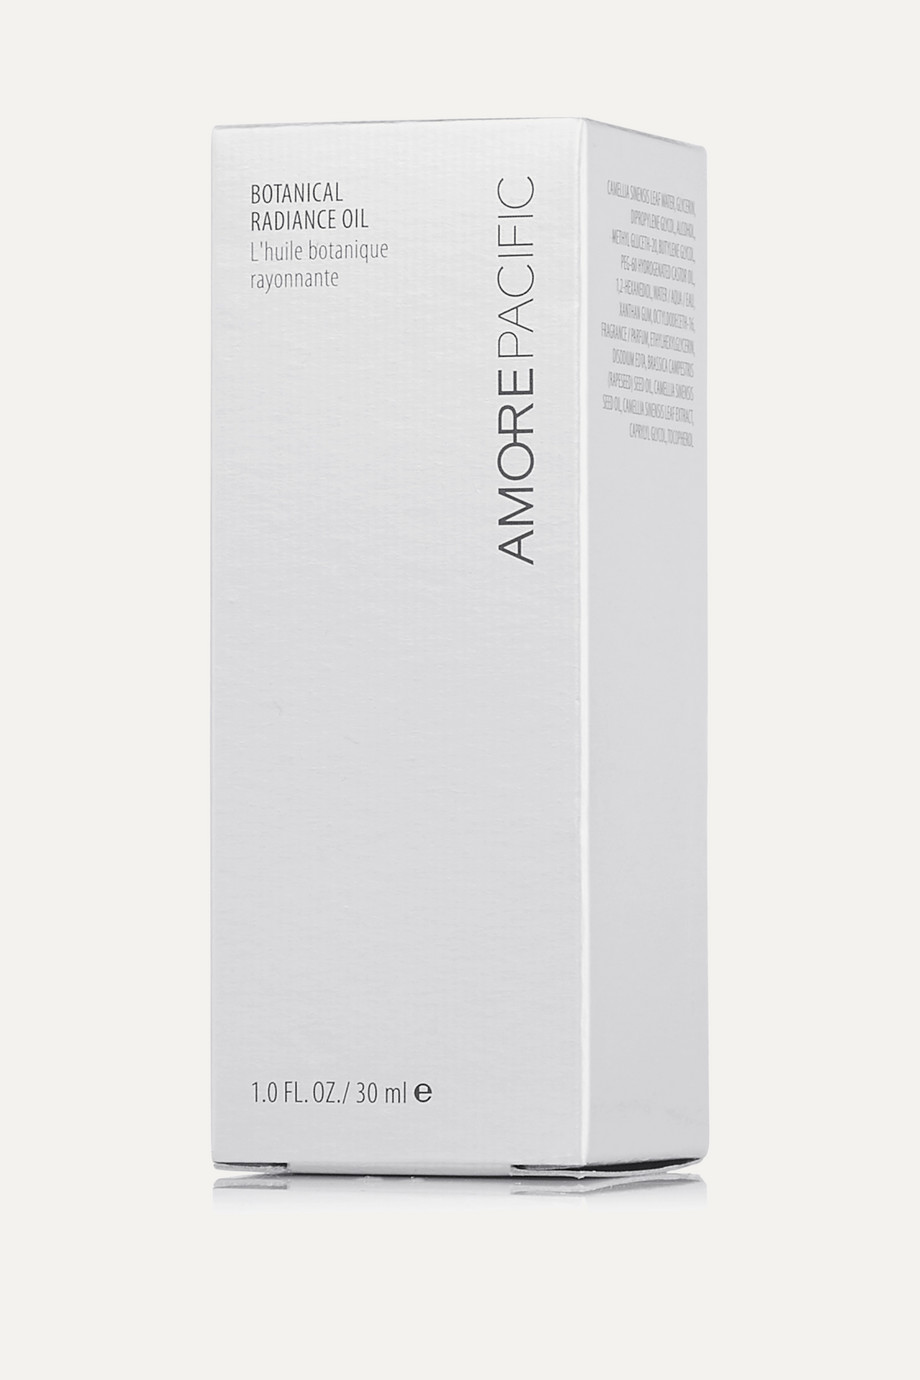 AMOREPACIFIC Botanical Radiance Oil, 30ml